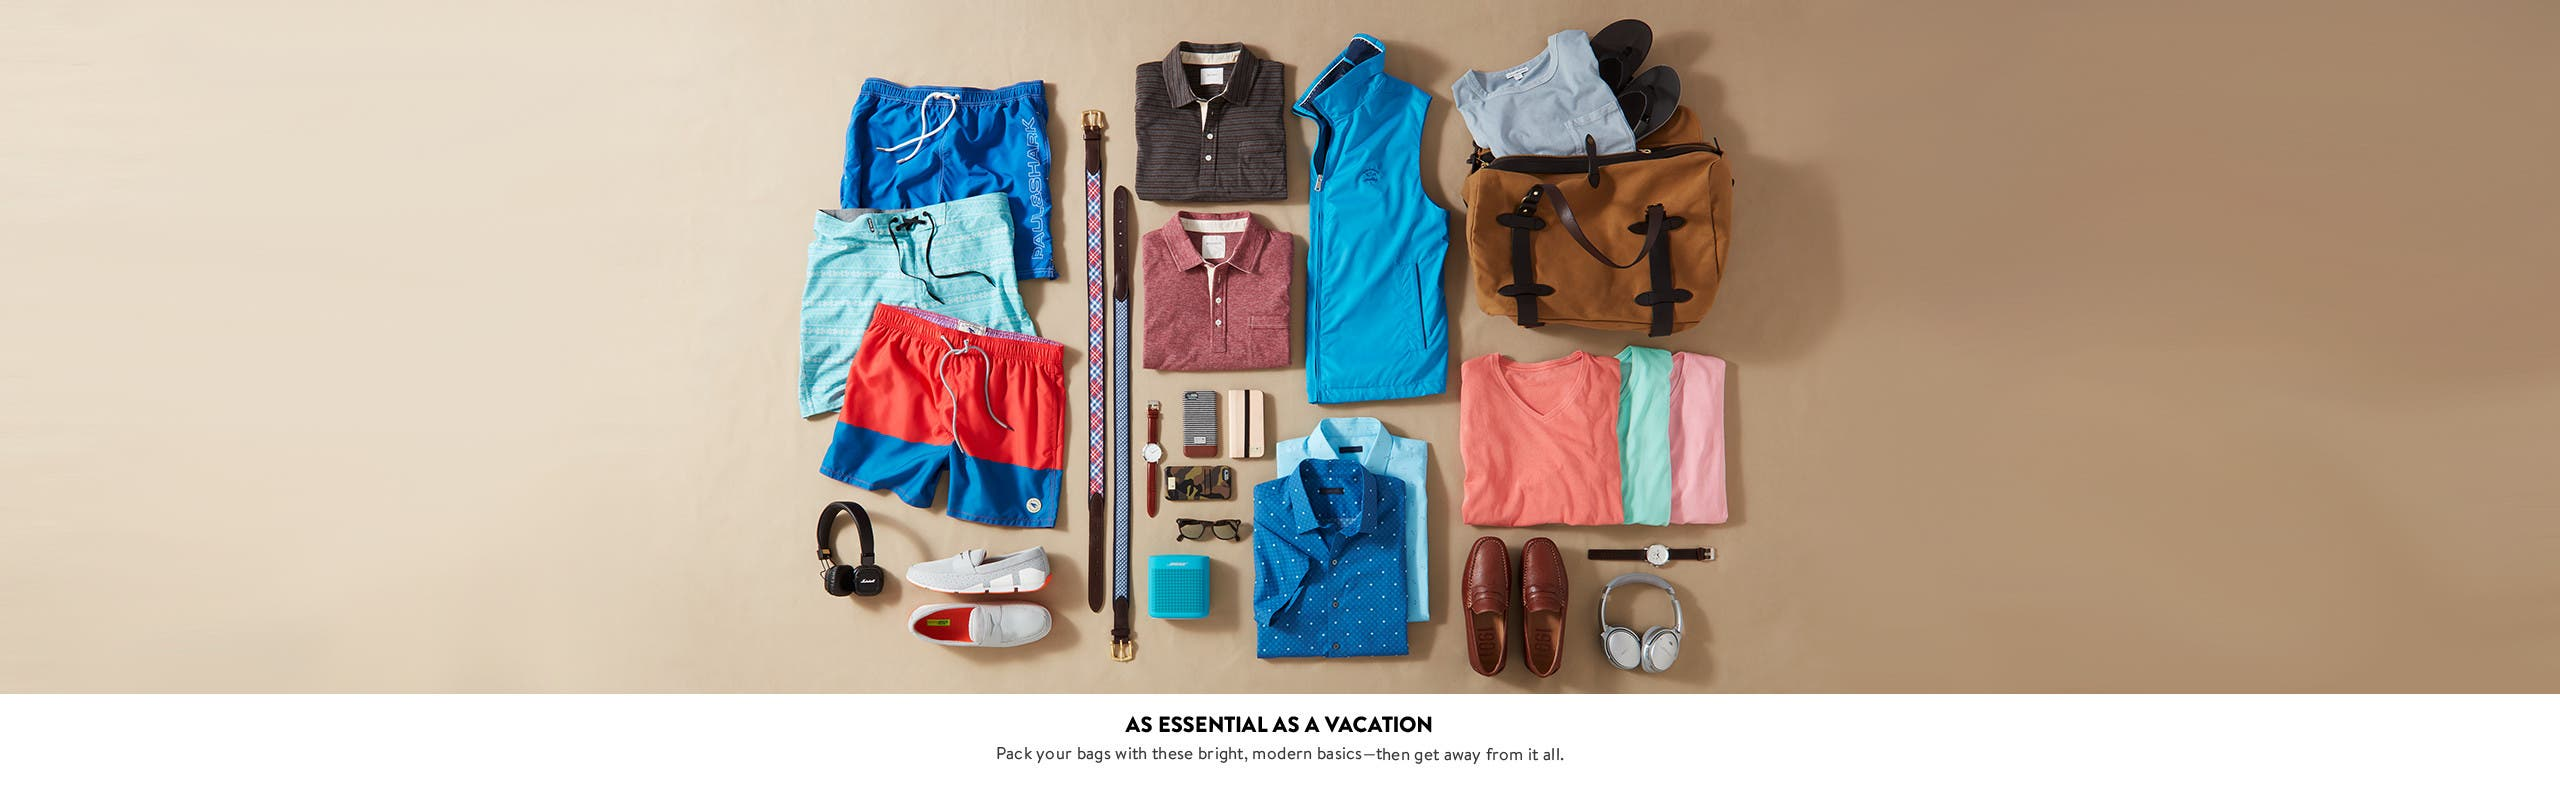 Vacation and resort essentials, from swimwear and sandals to belts, shirts and more.